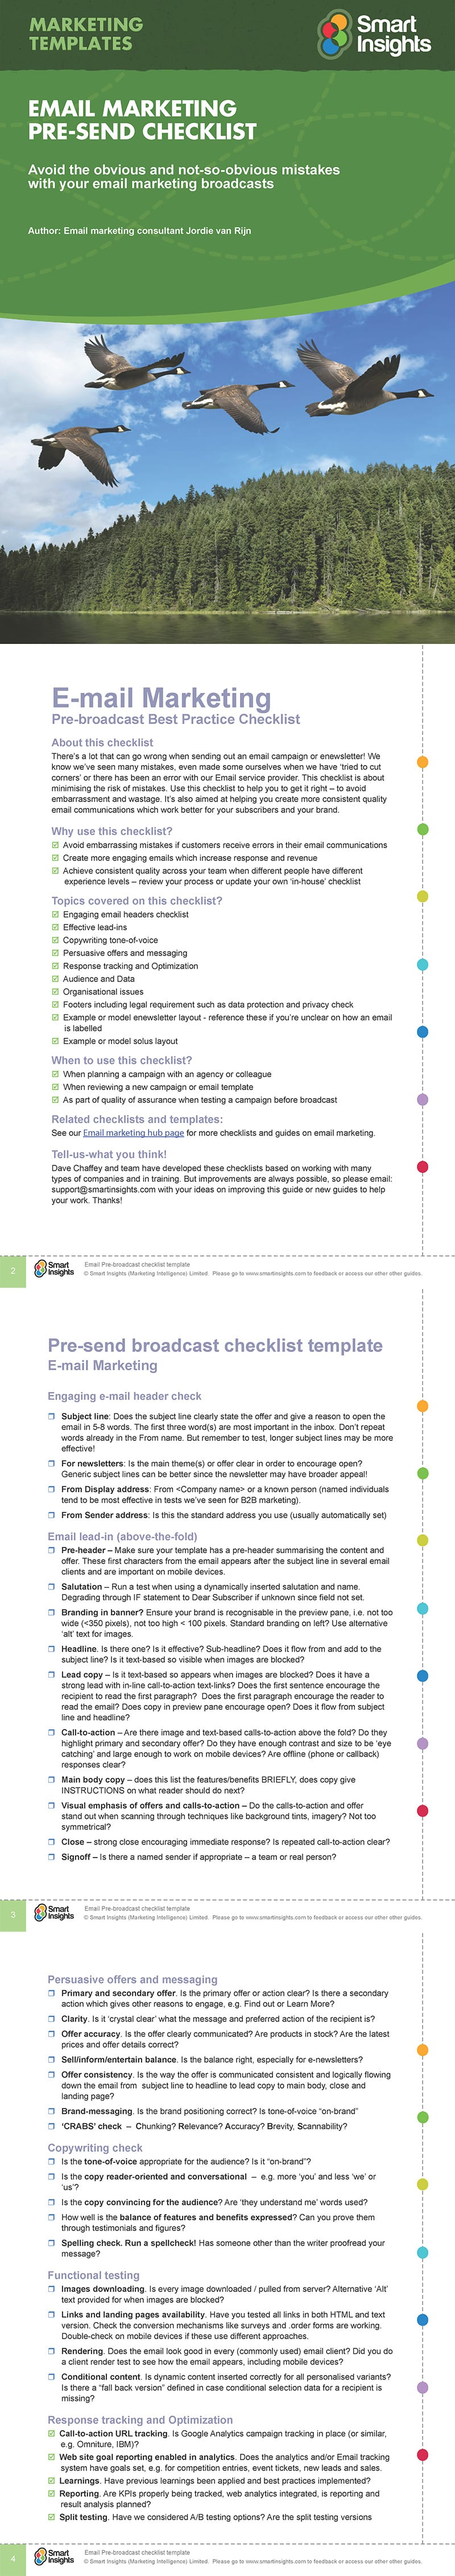 Email marketing campaign broadcast checklist